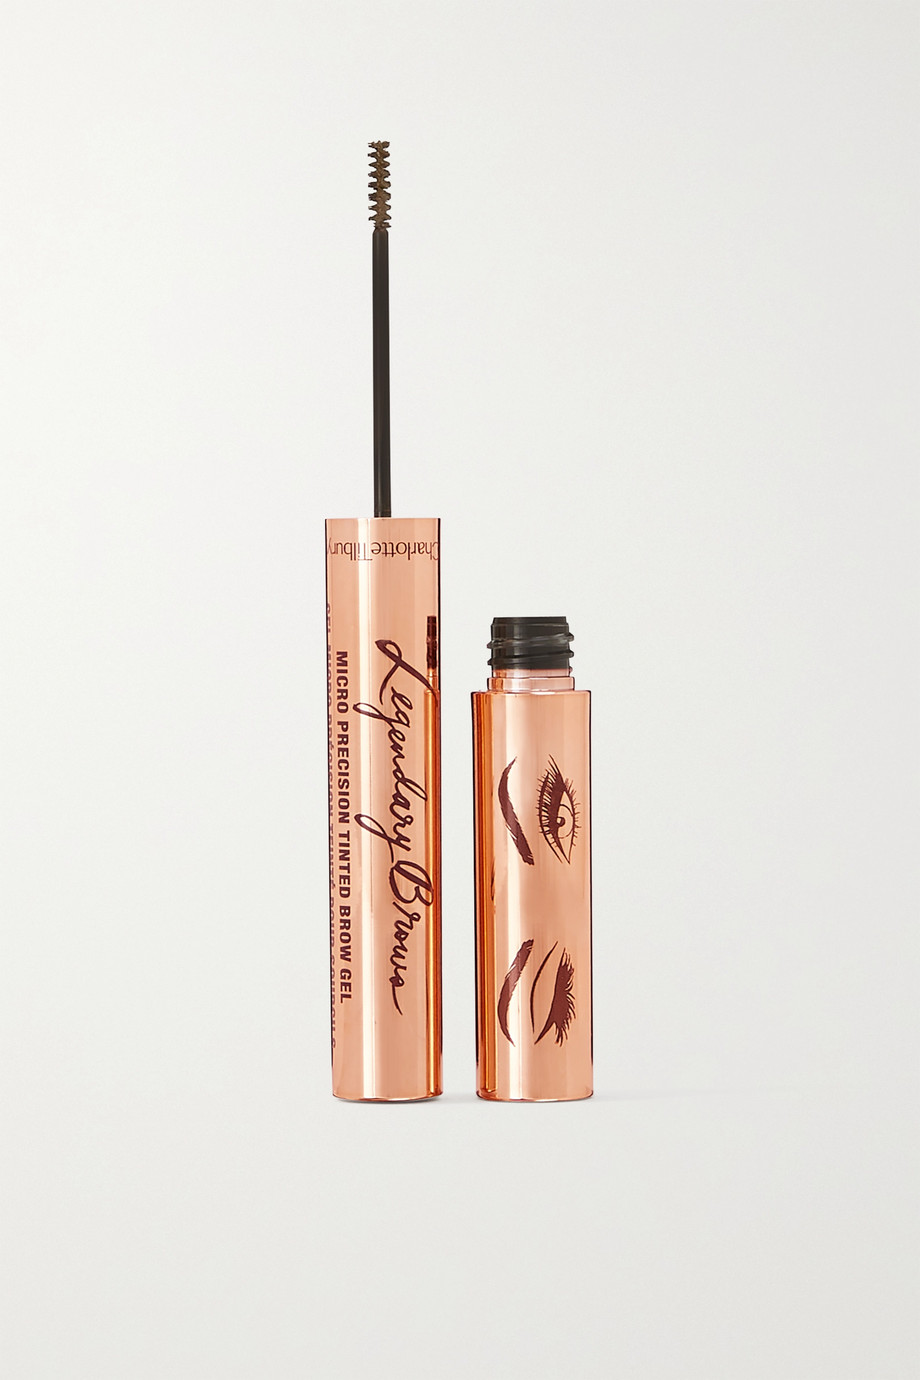 CHARLOTTE TILBURY Legendary Brows - Taupe